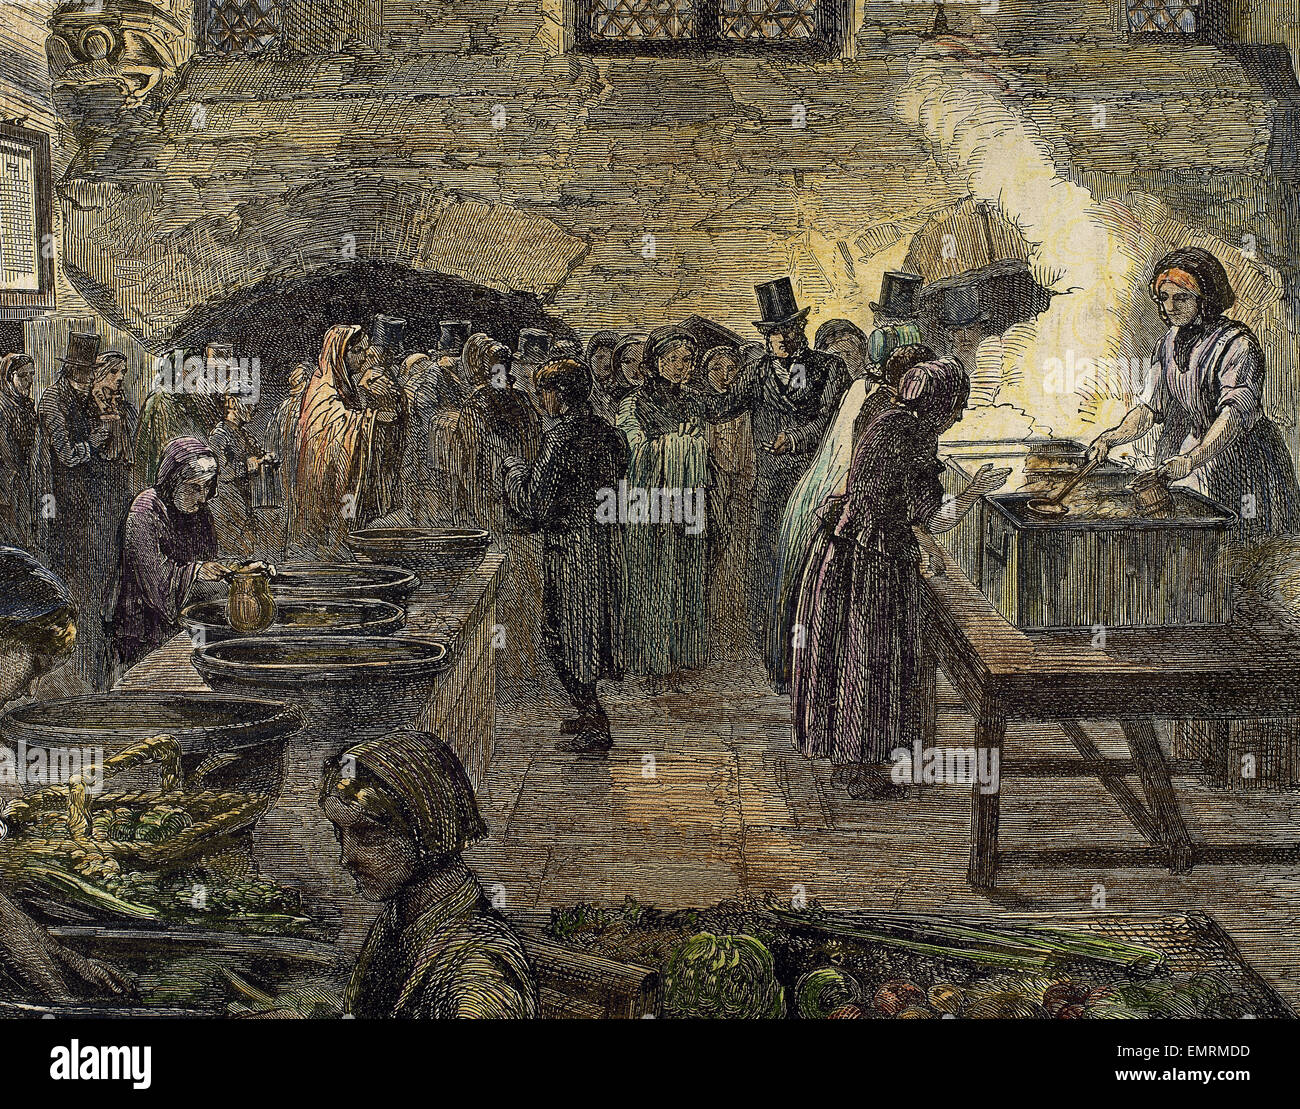 Lancashire Cotton Famine (1861-65). Depression in the textile industry of North West England. People waiting for - Stock Image